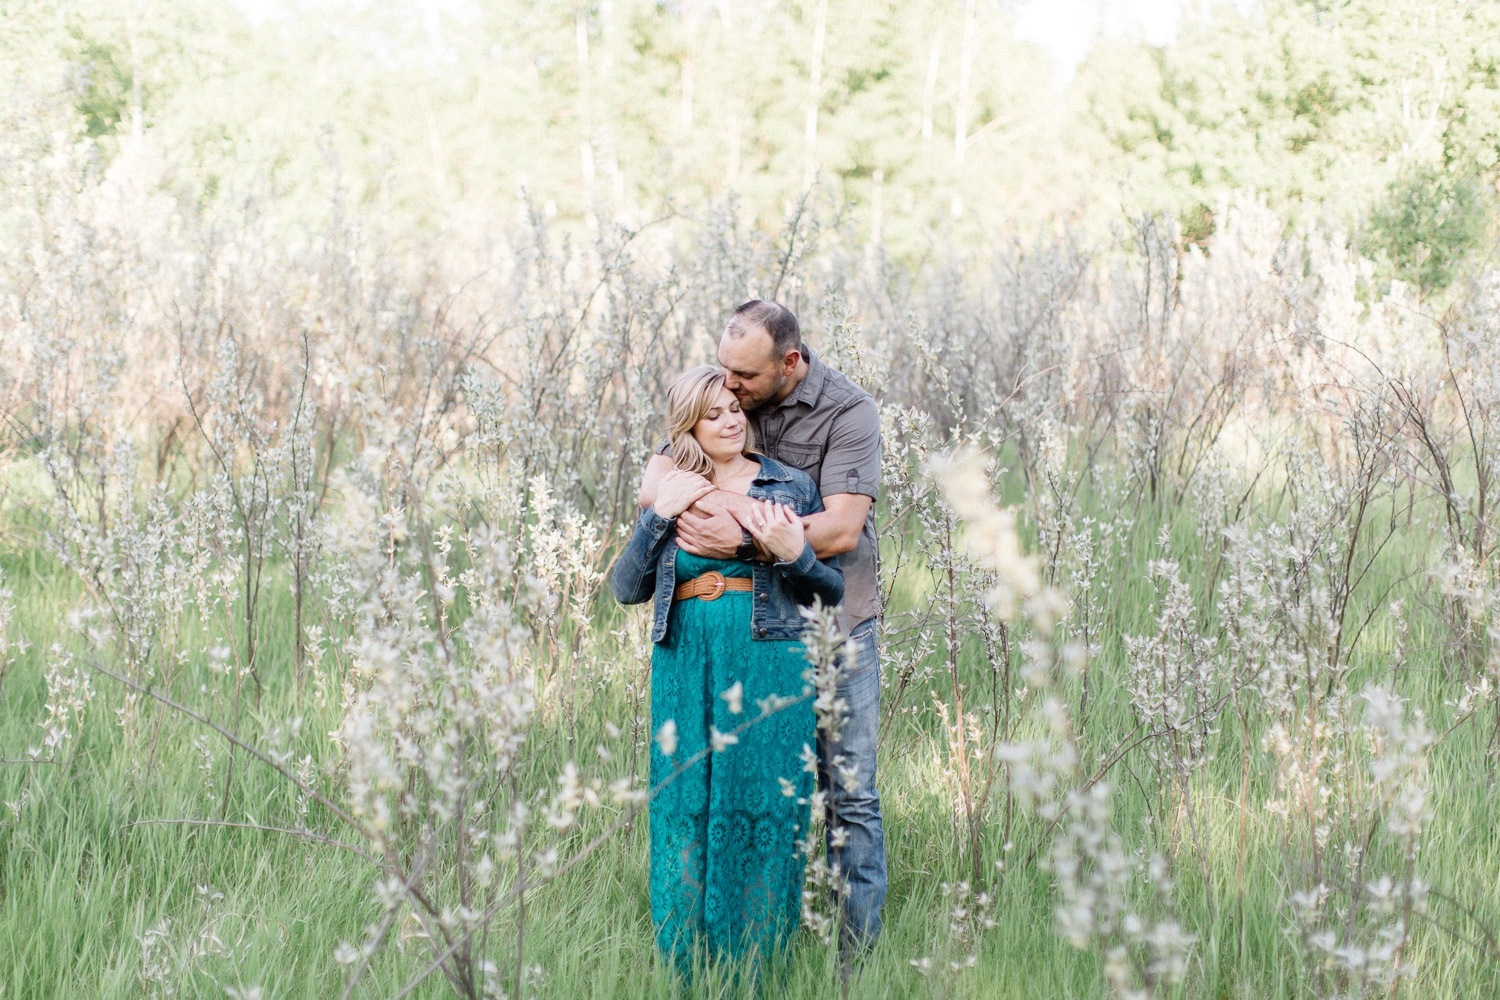 fish creek park engagement session - Calgary Wedding Photographer_4641